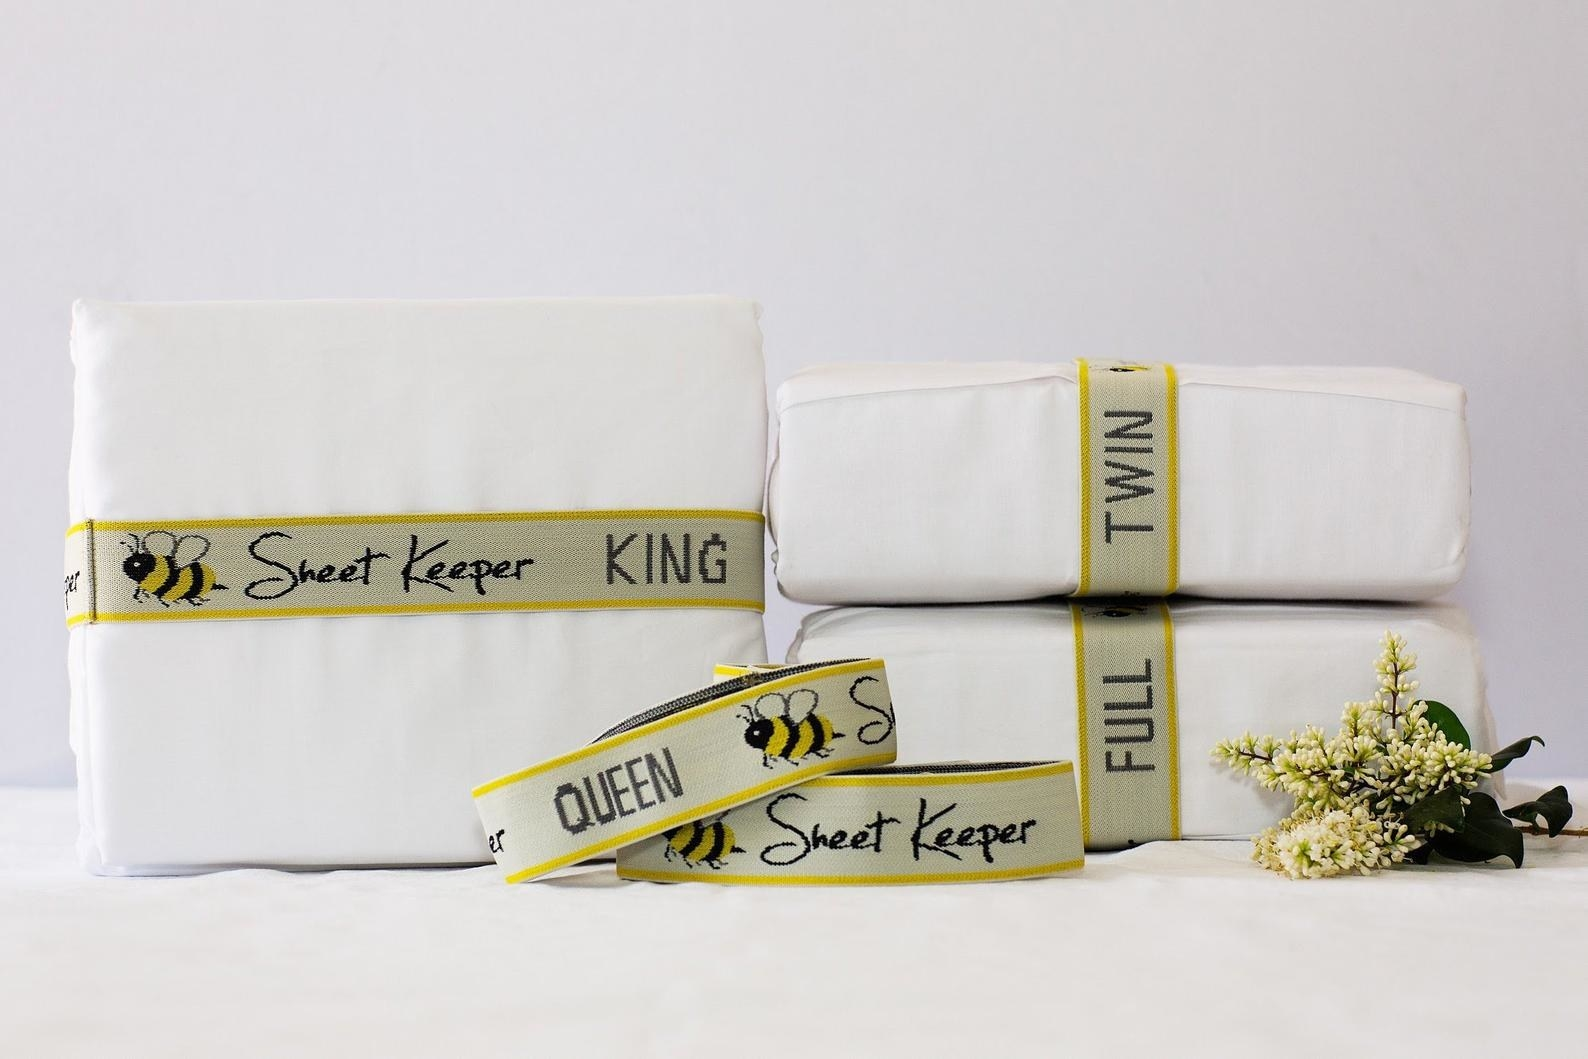 several sized sheets with the bands on them that are easy to read with the sizes